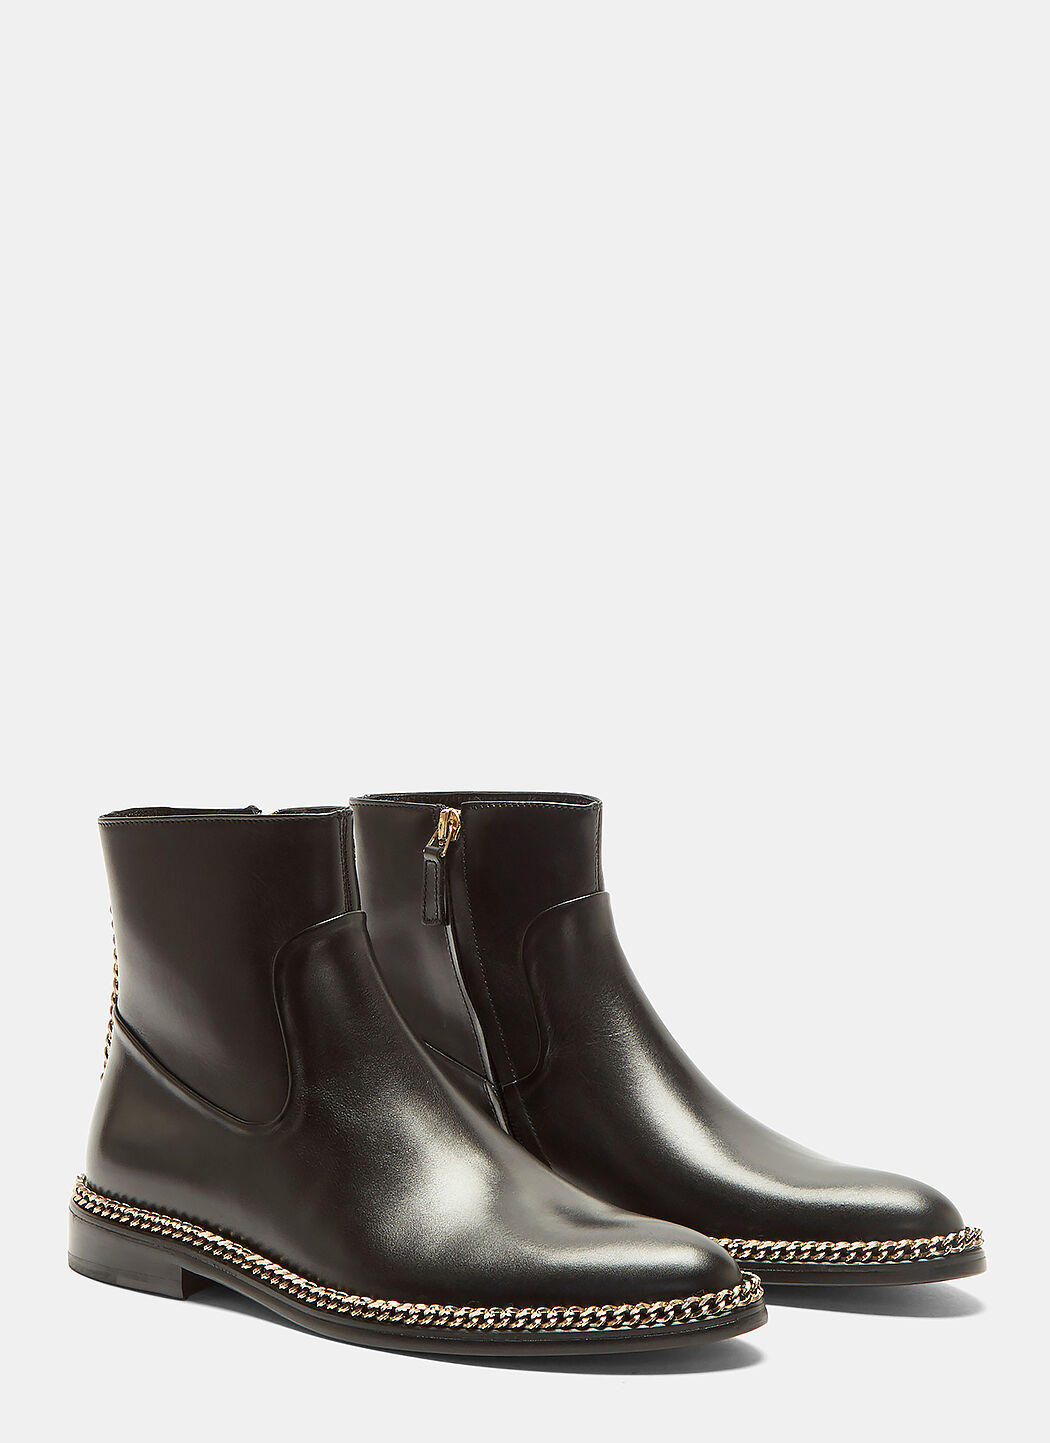 Lanvin Curb Chain Leather Ankle Boots 83nAnXmW8